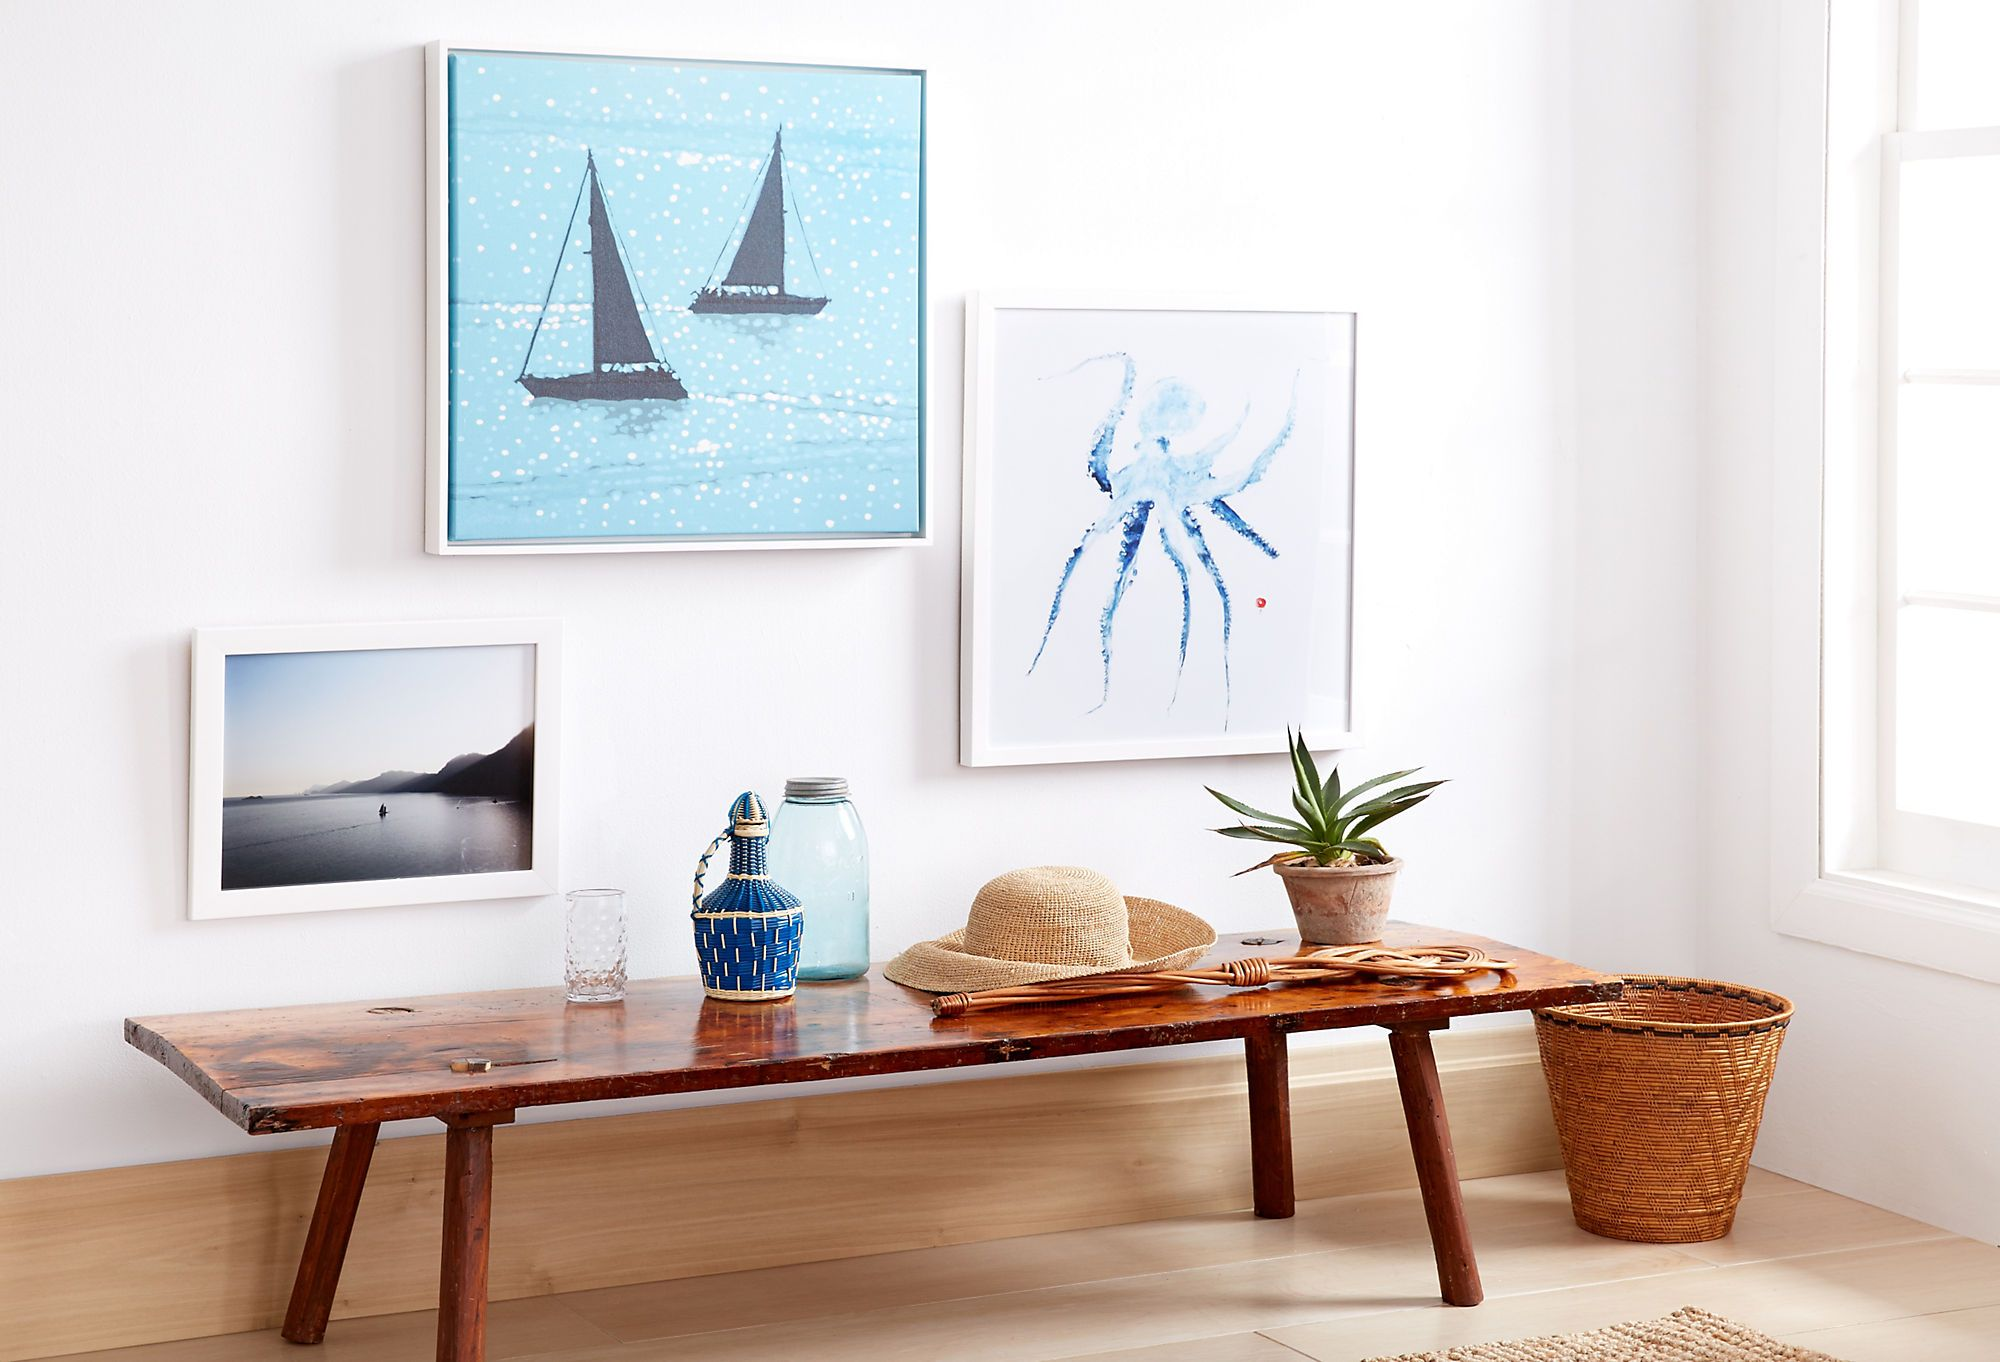 Great Escapes: Art Inspired by Land & Sea